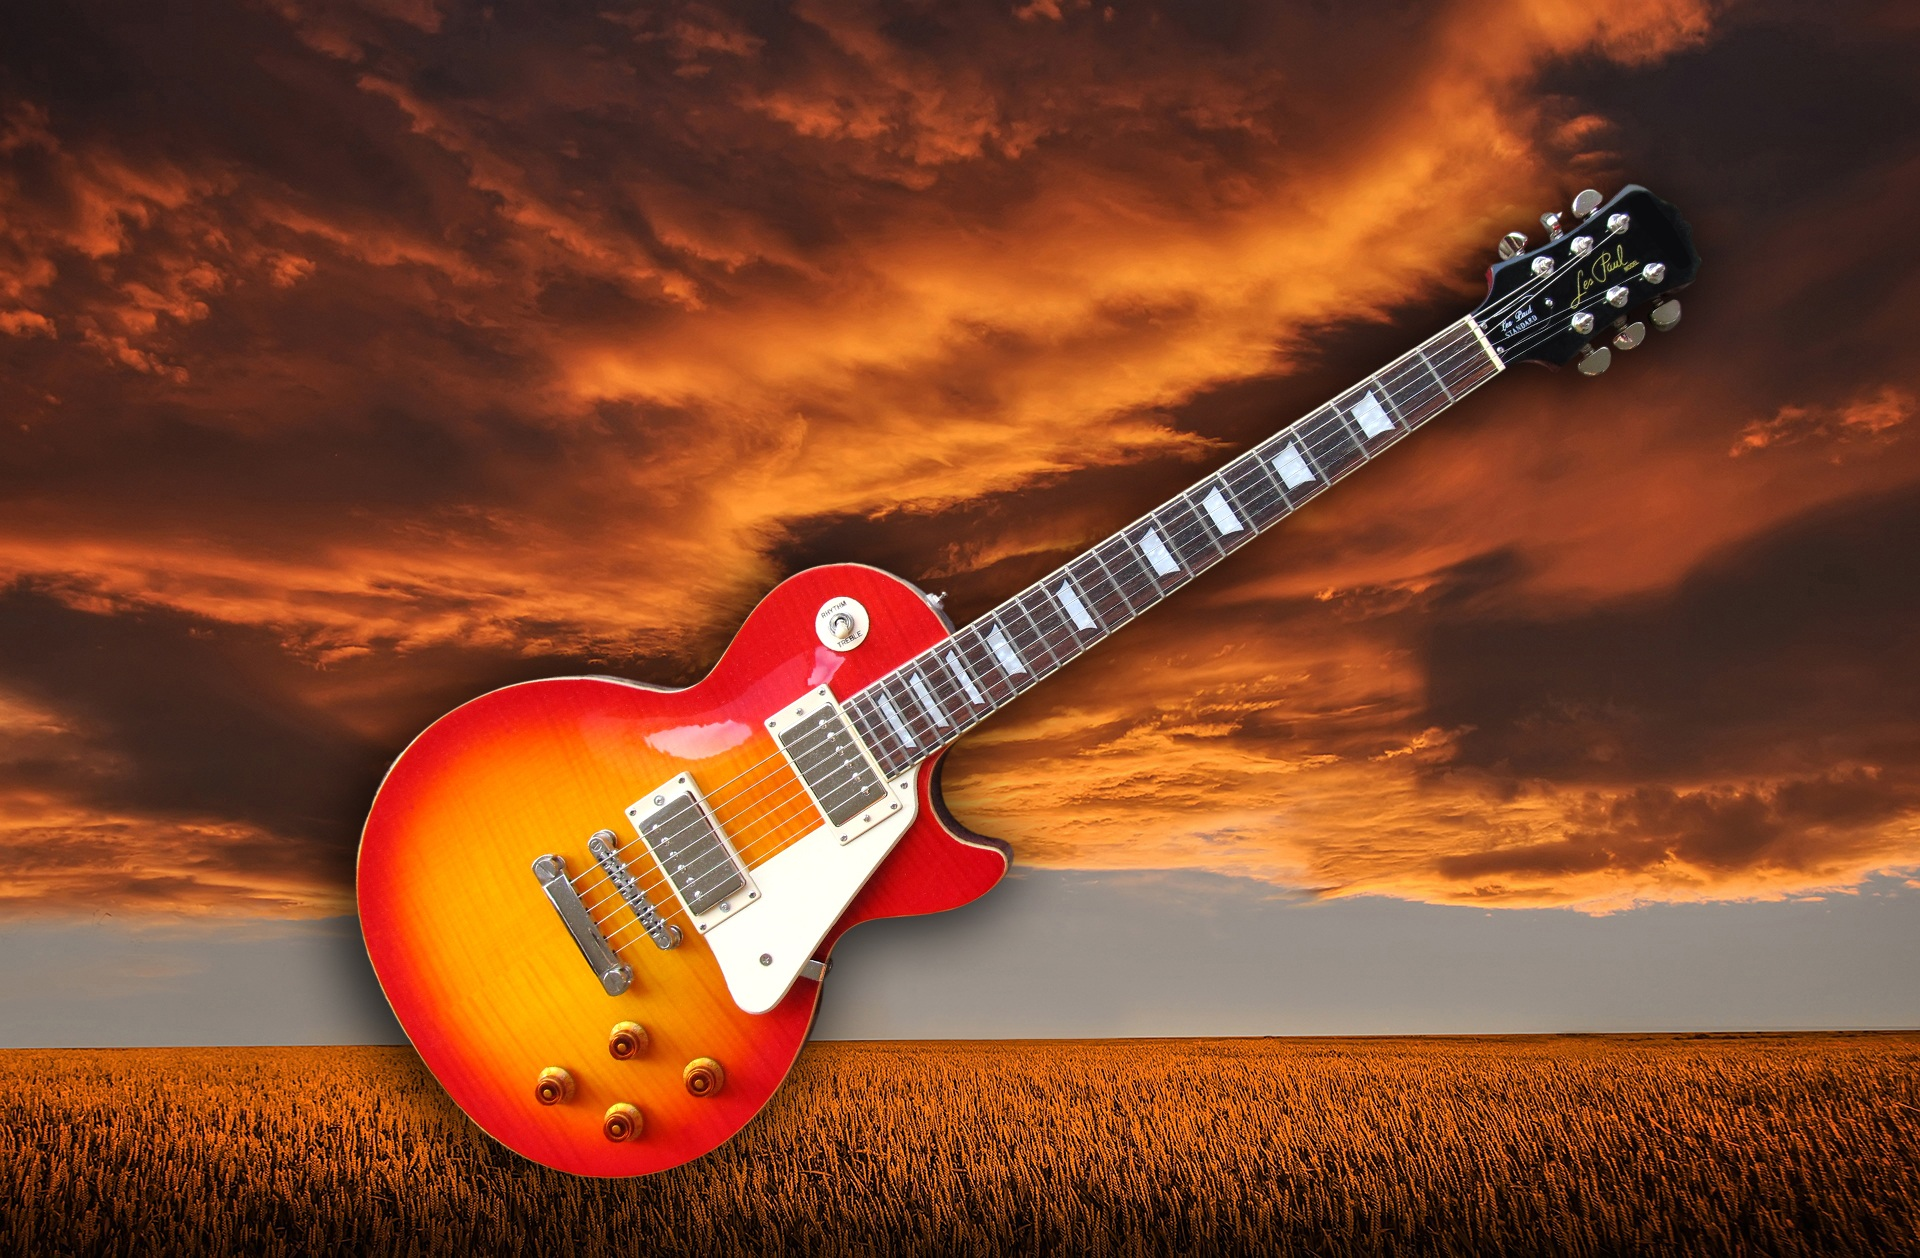 Les Paul Electric Guitar Hd Wallpaper Background Image